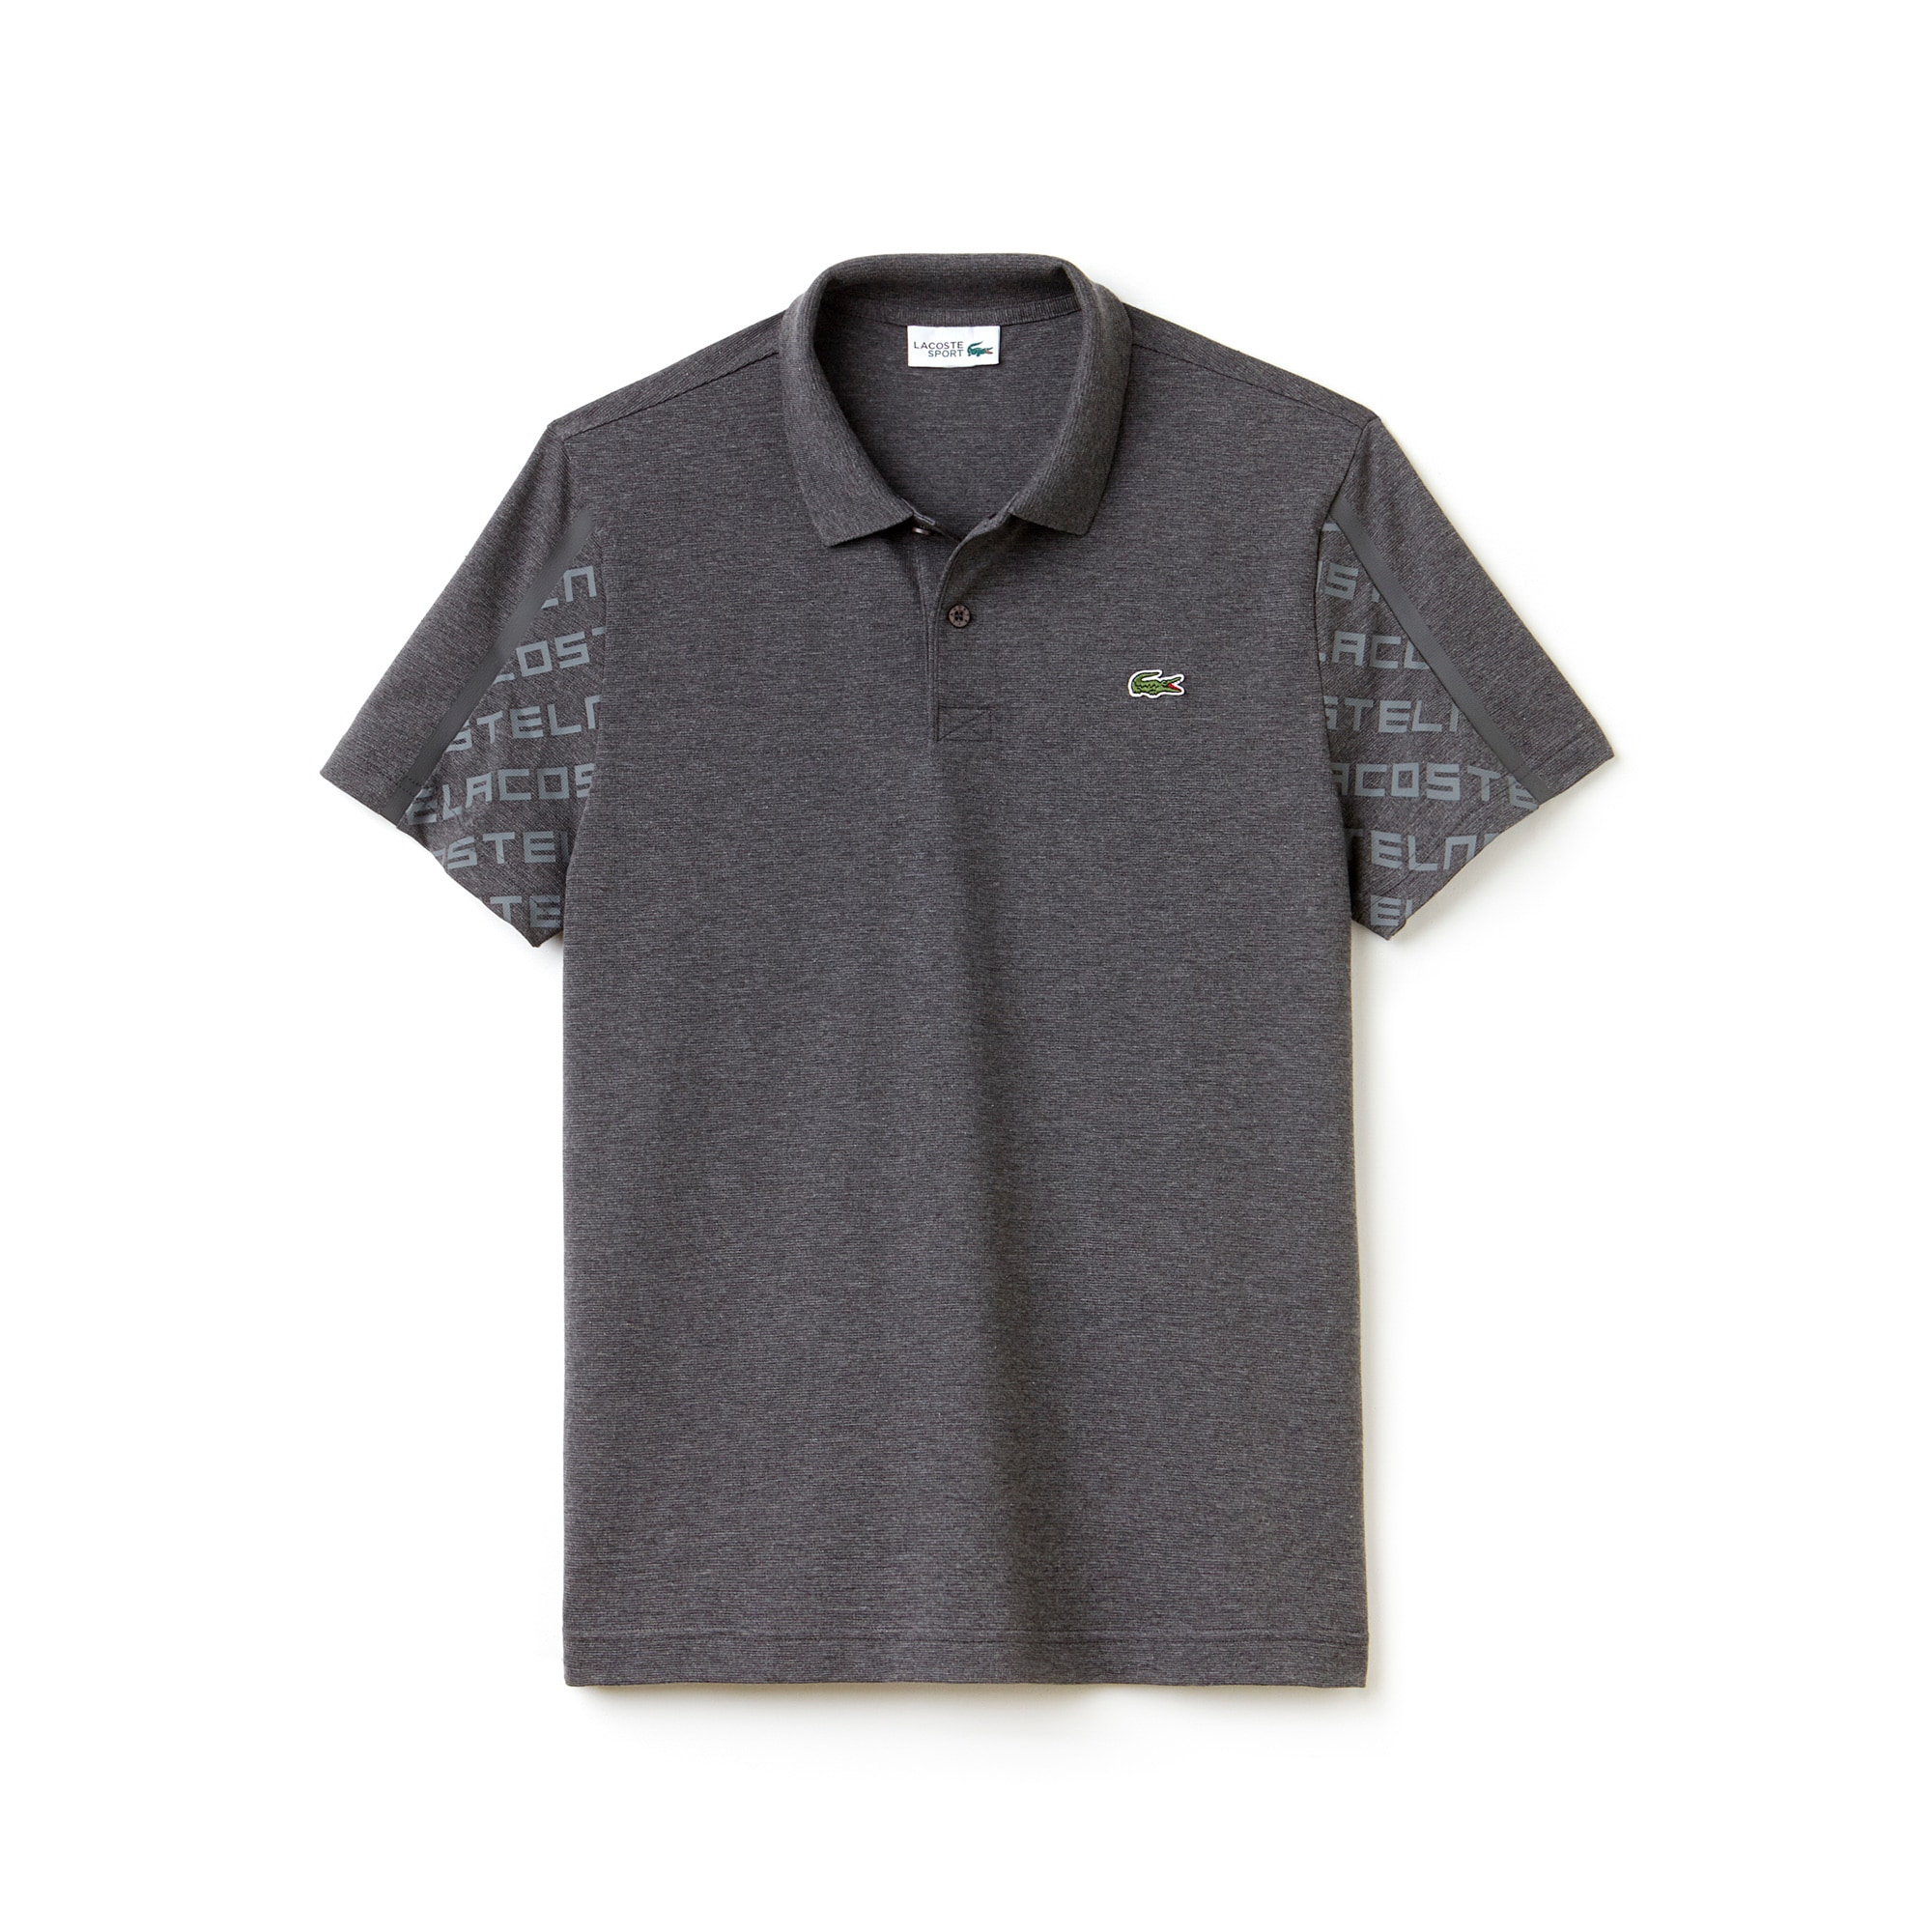 Men's Lacoste SPORT Tennis Print Sleeves Lightweight Knit Polo